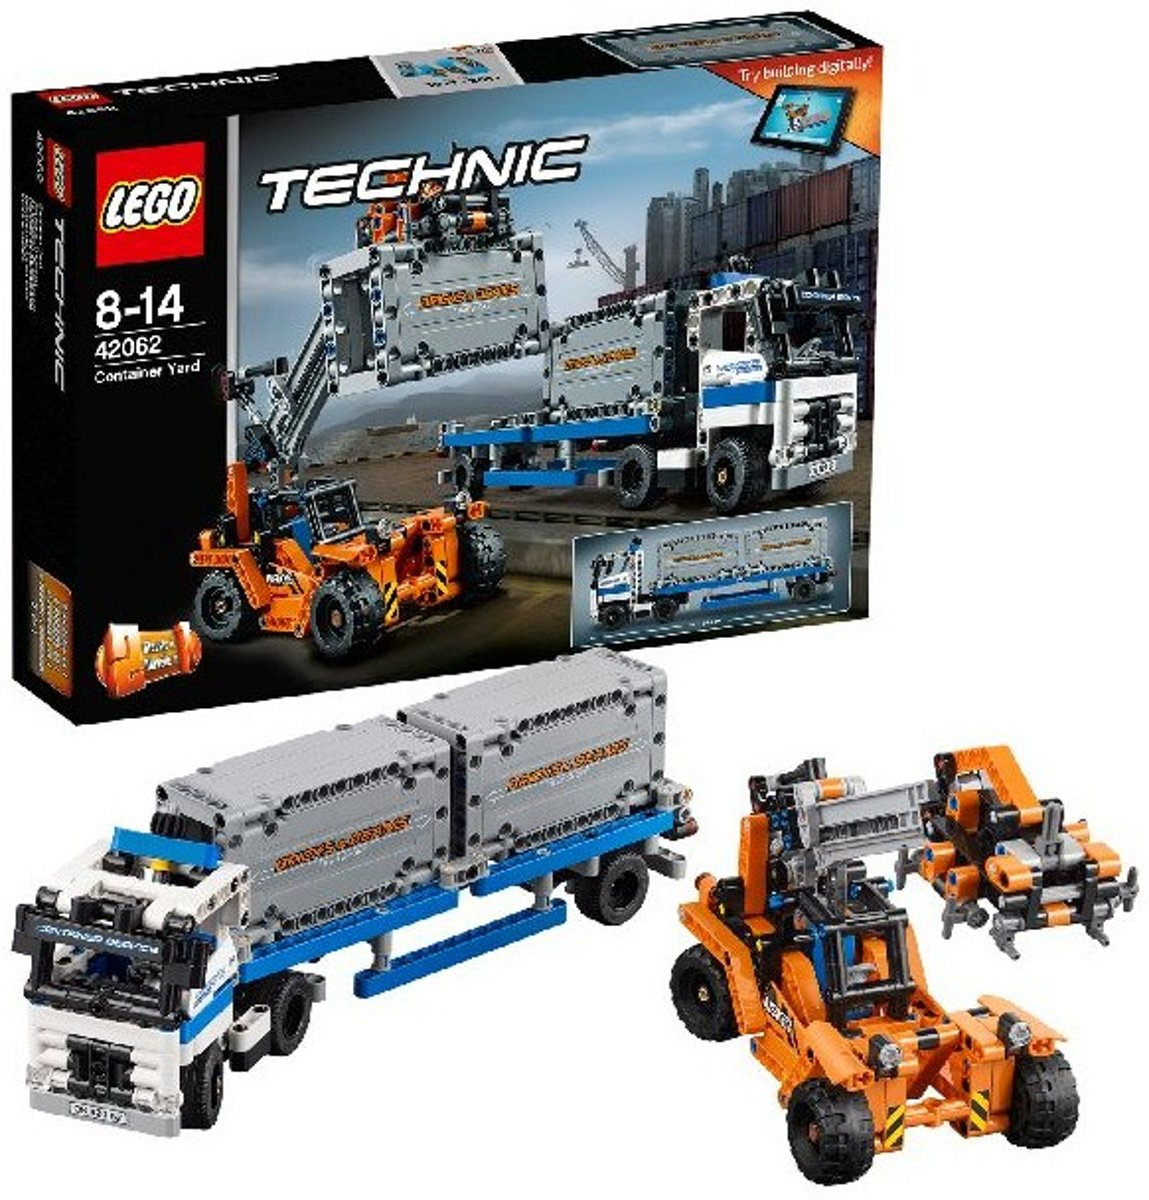 42062 Lego Technic Containertransport - incl. containers